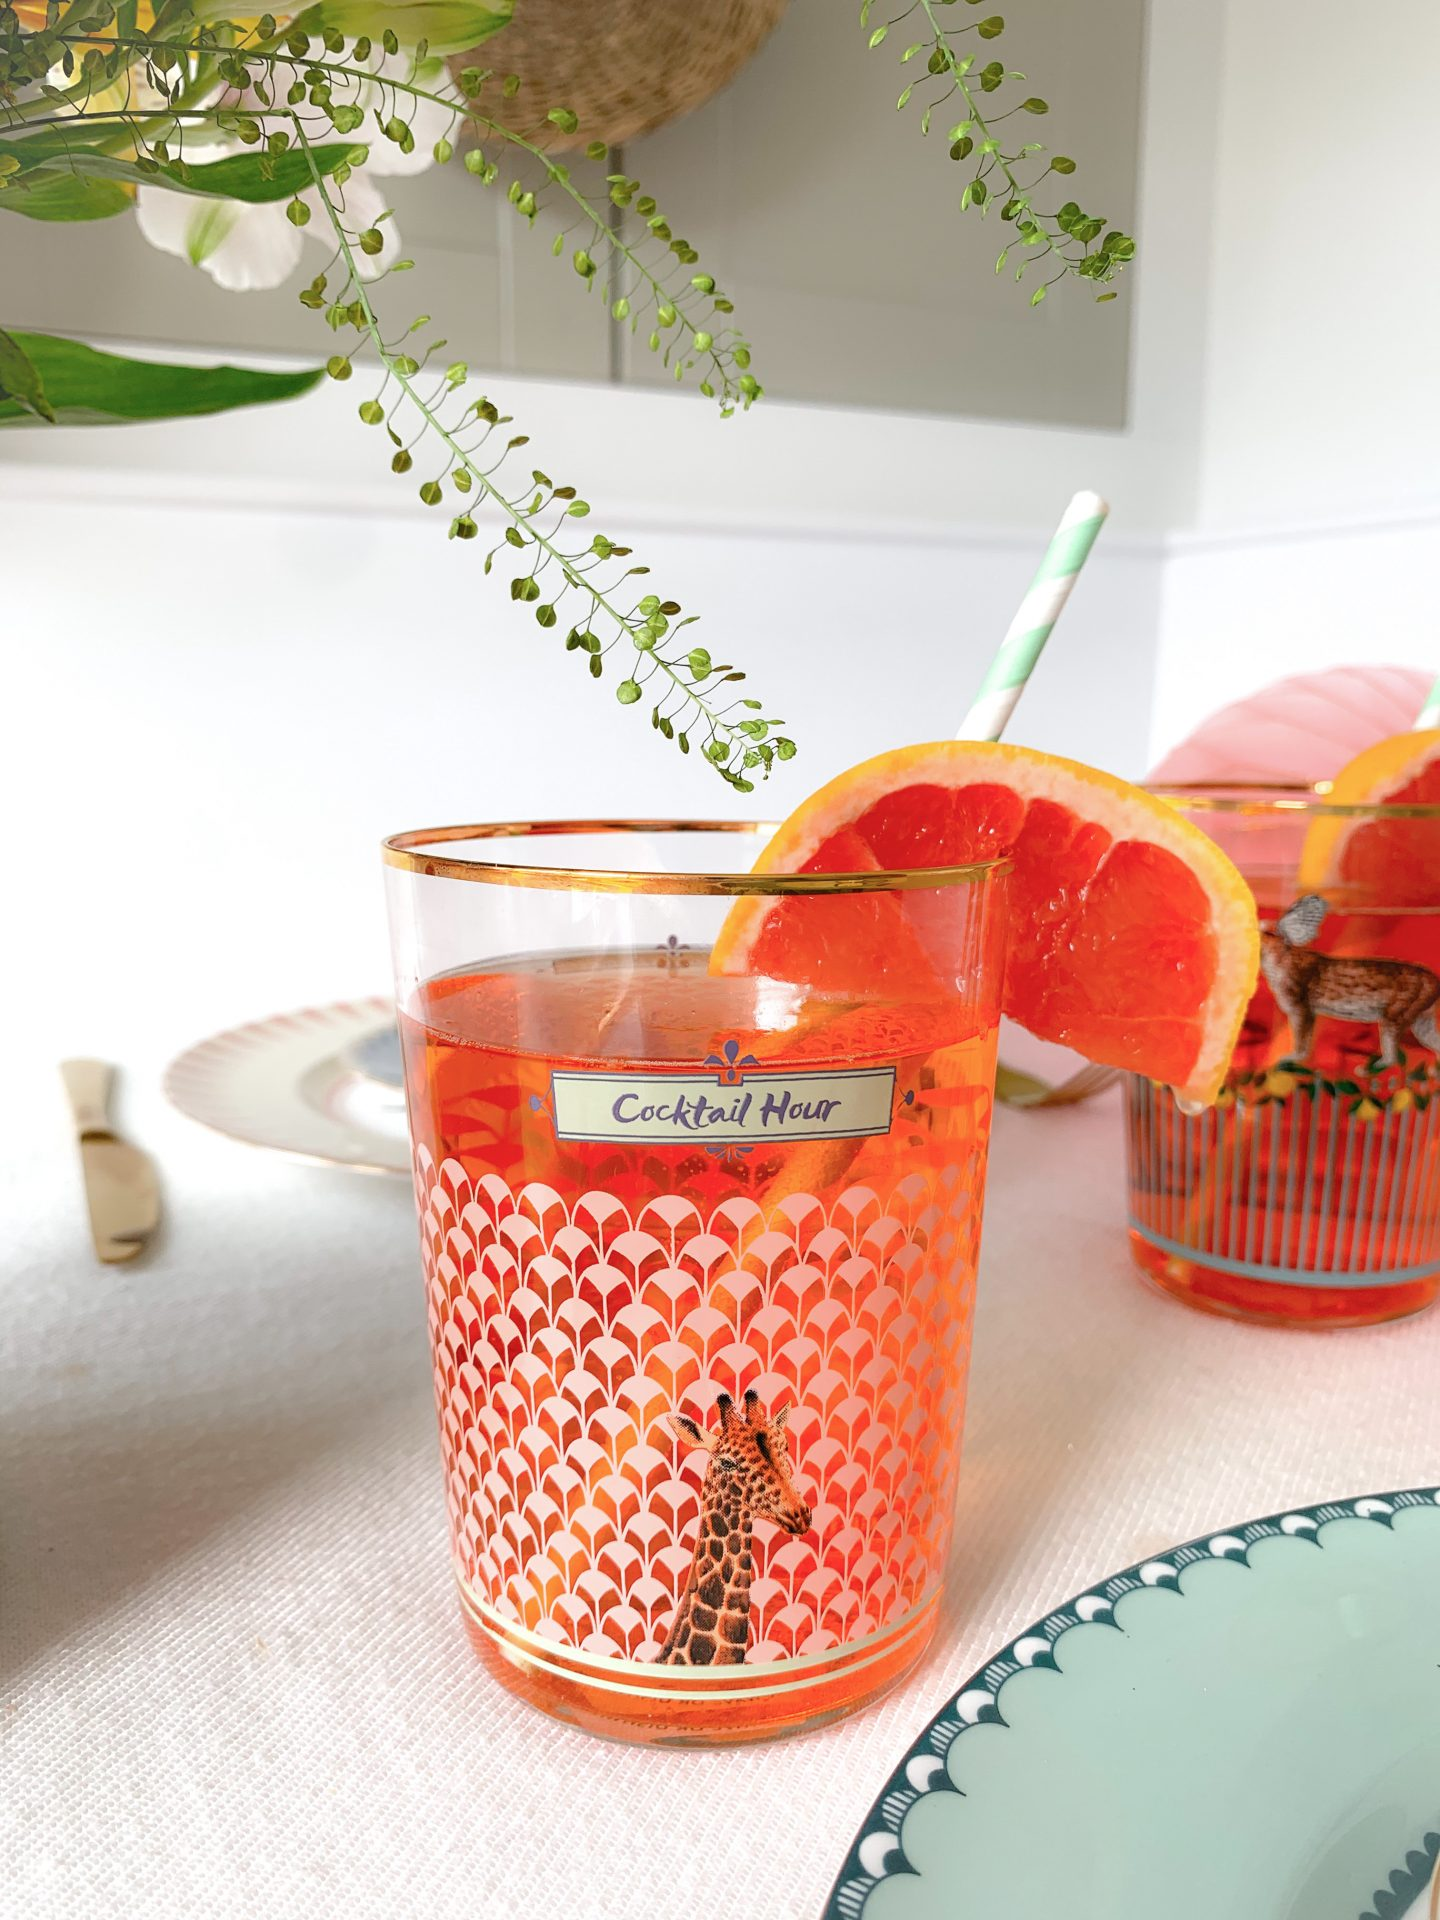 ELDERFLOWER APEROL SPRITZ RECIPE